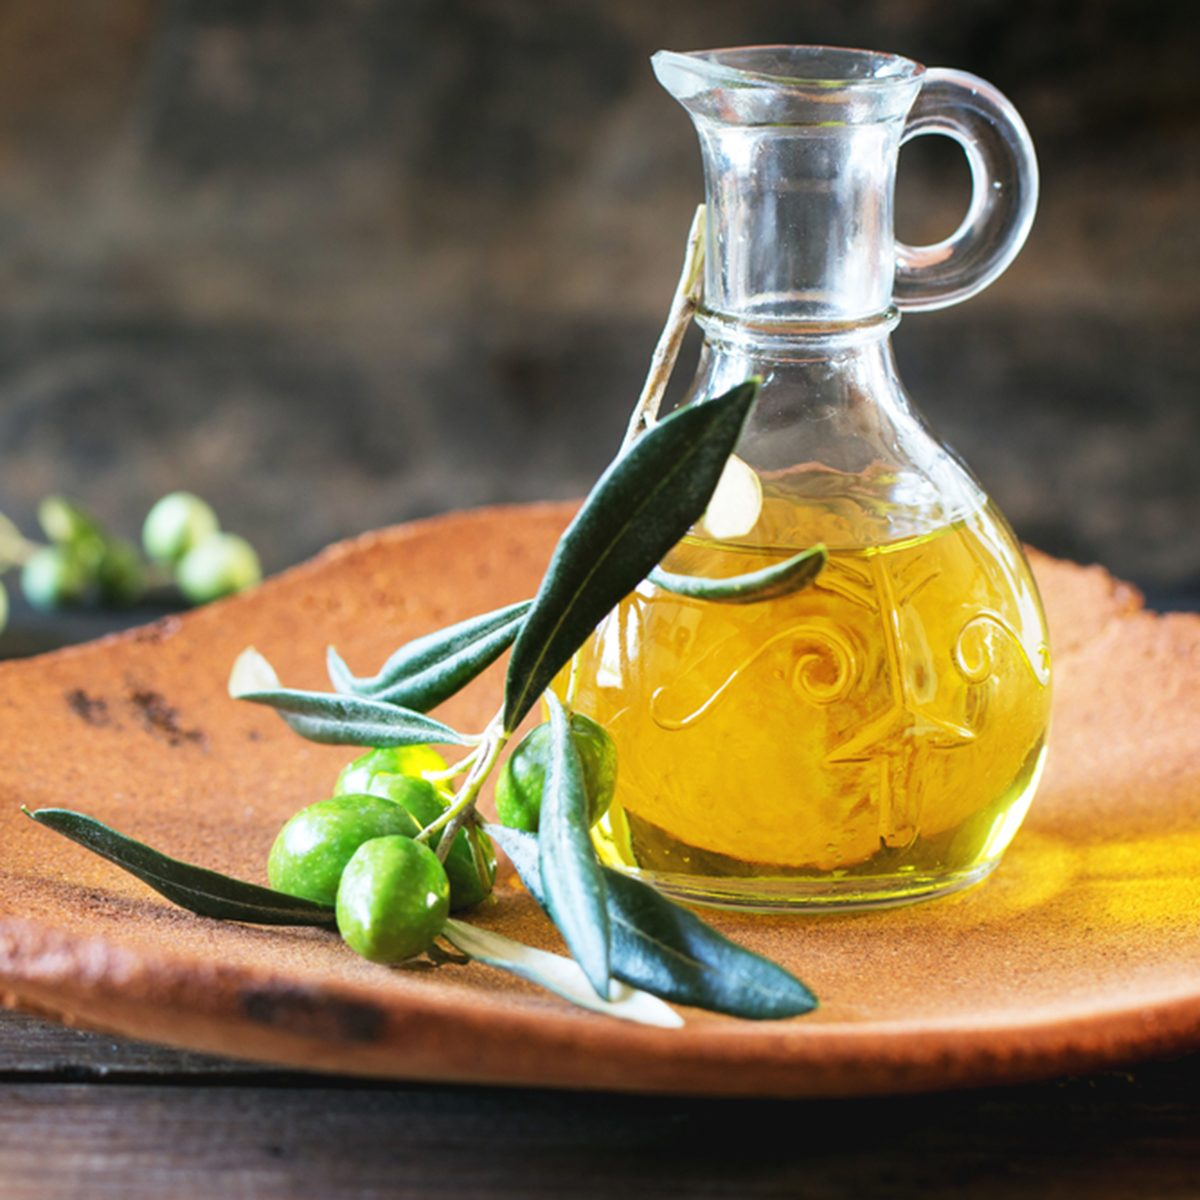 Bottle of olive oil with olive branch in handmade clay plate over wooden table.